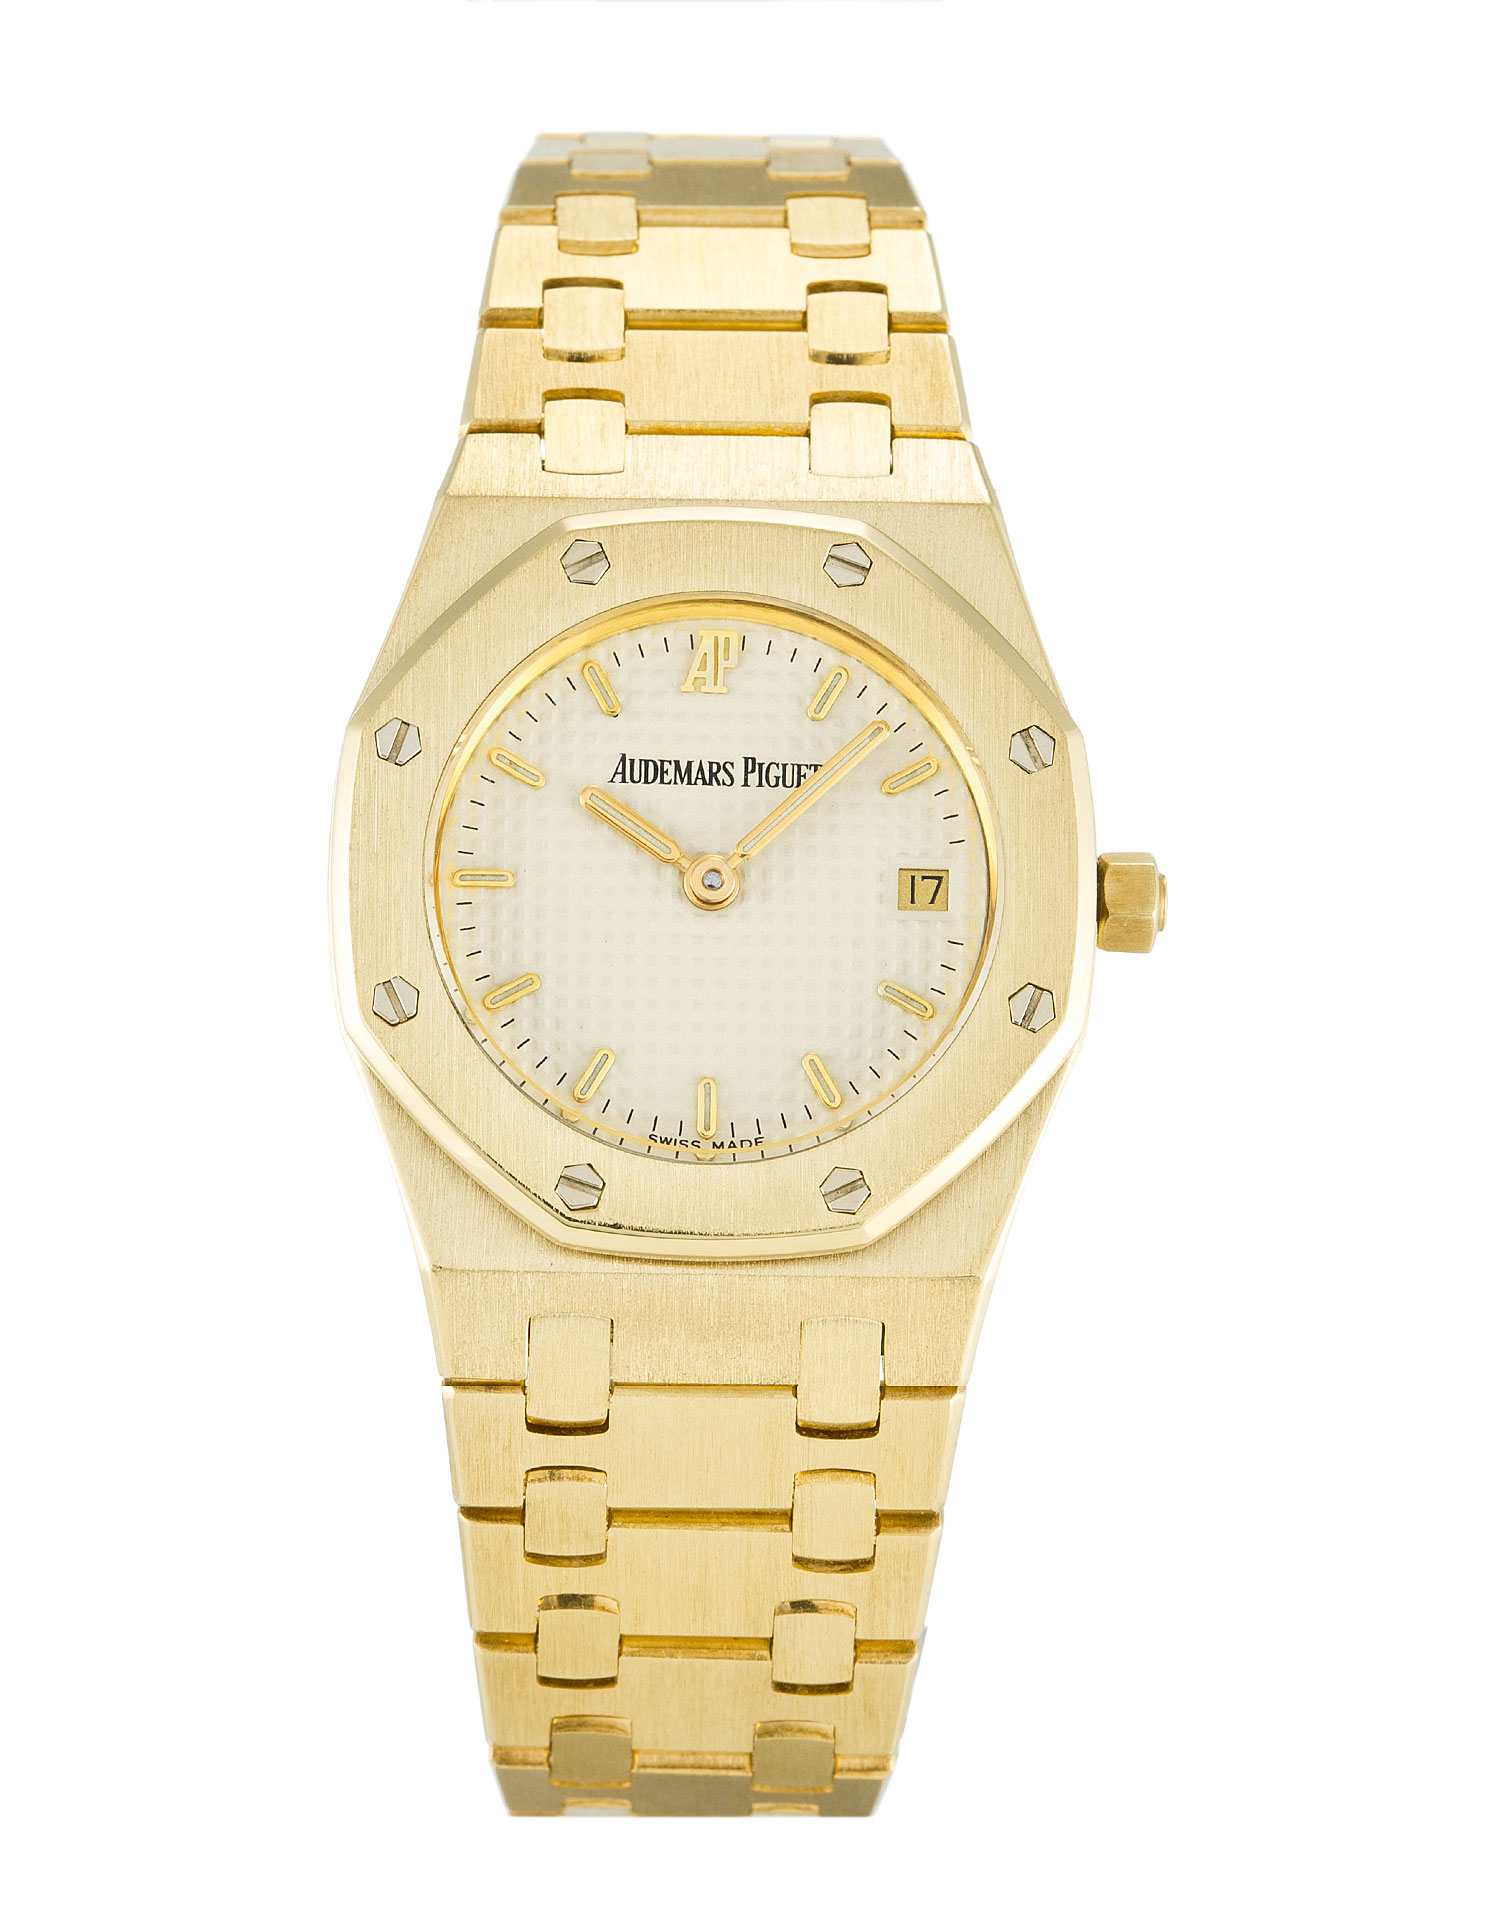 Audemars Piguet Royal Oak 66270BA.OO.0722BA.07